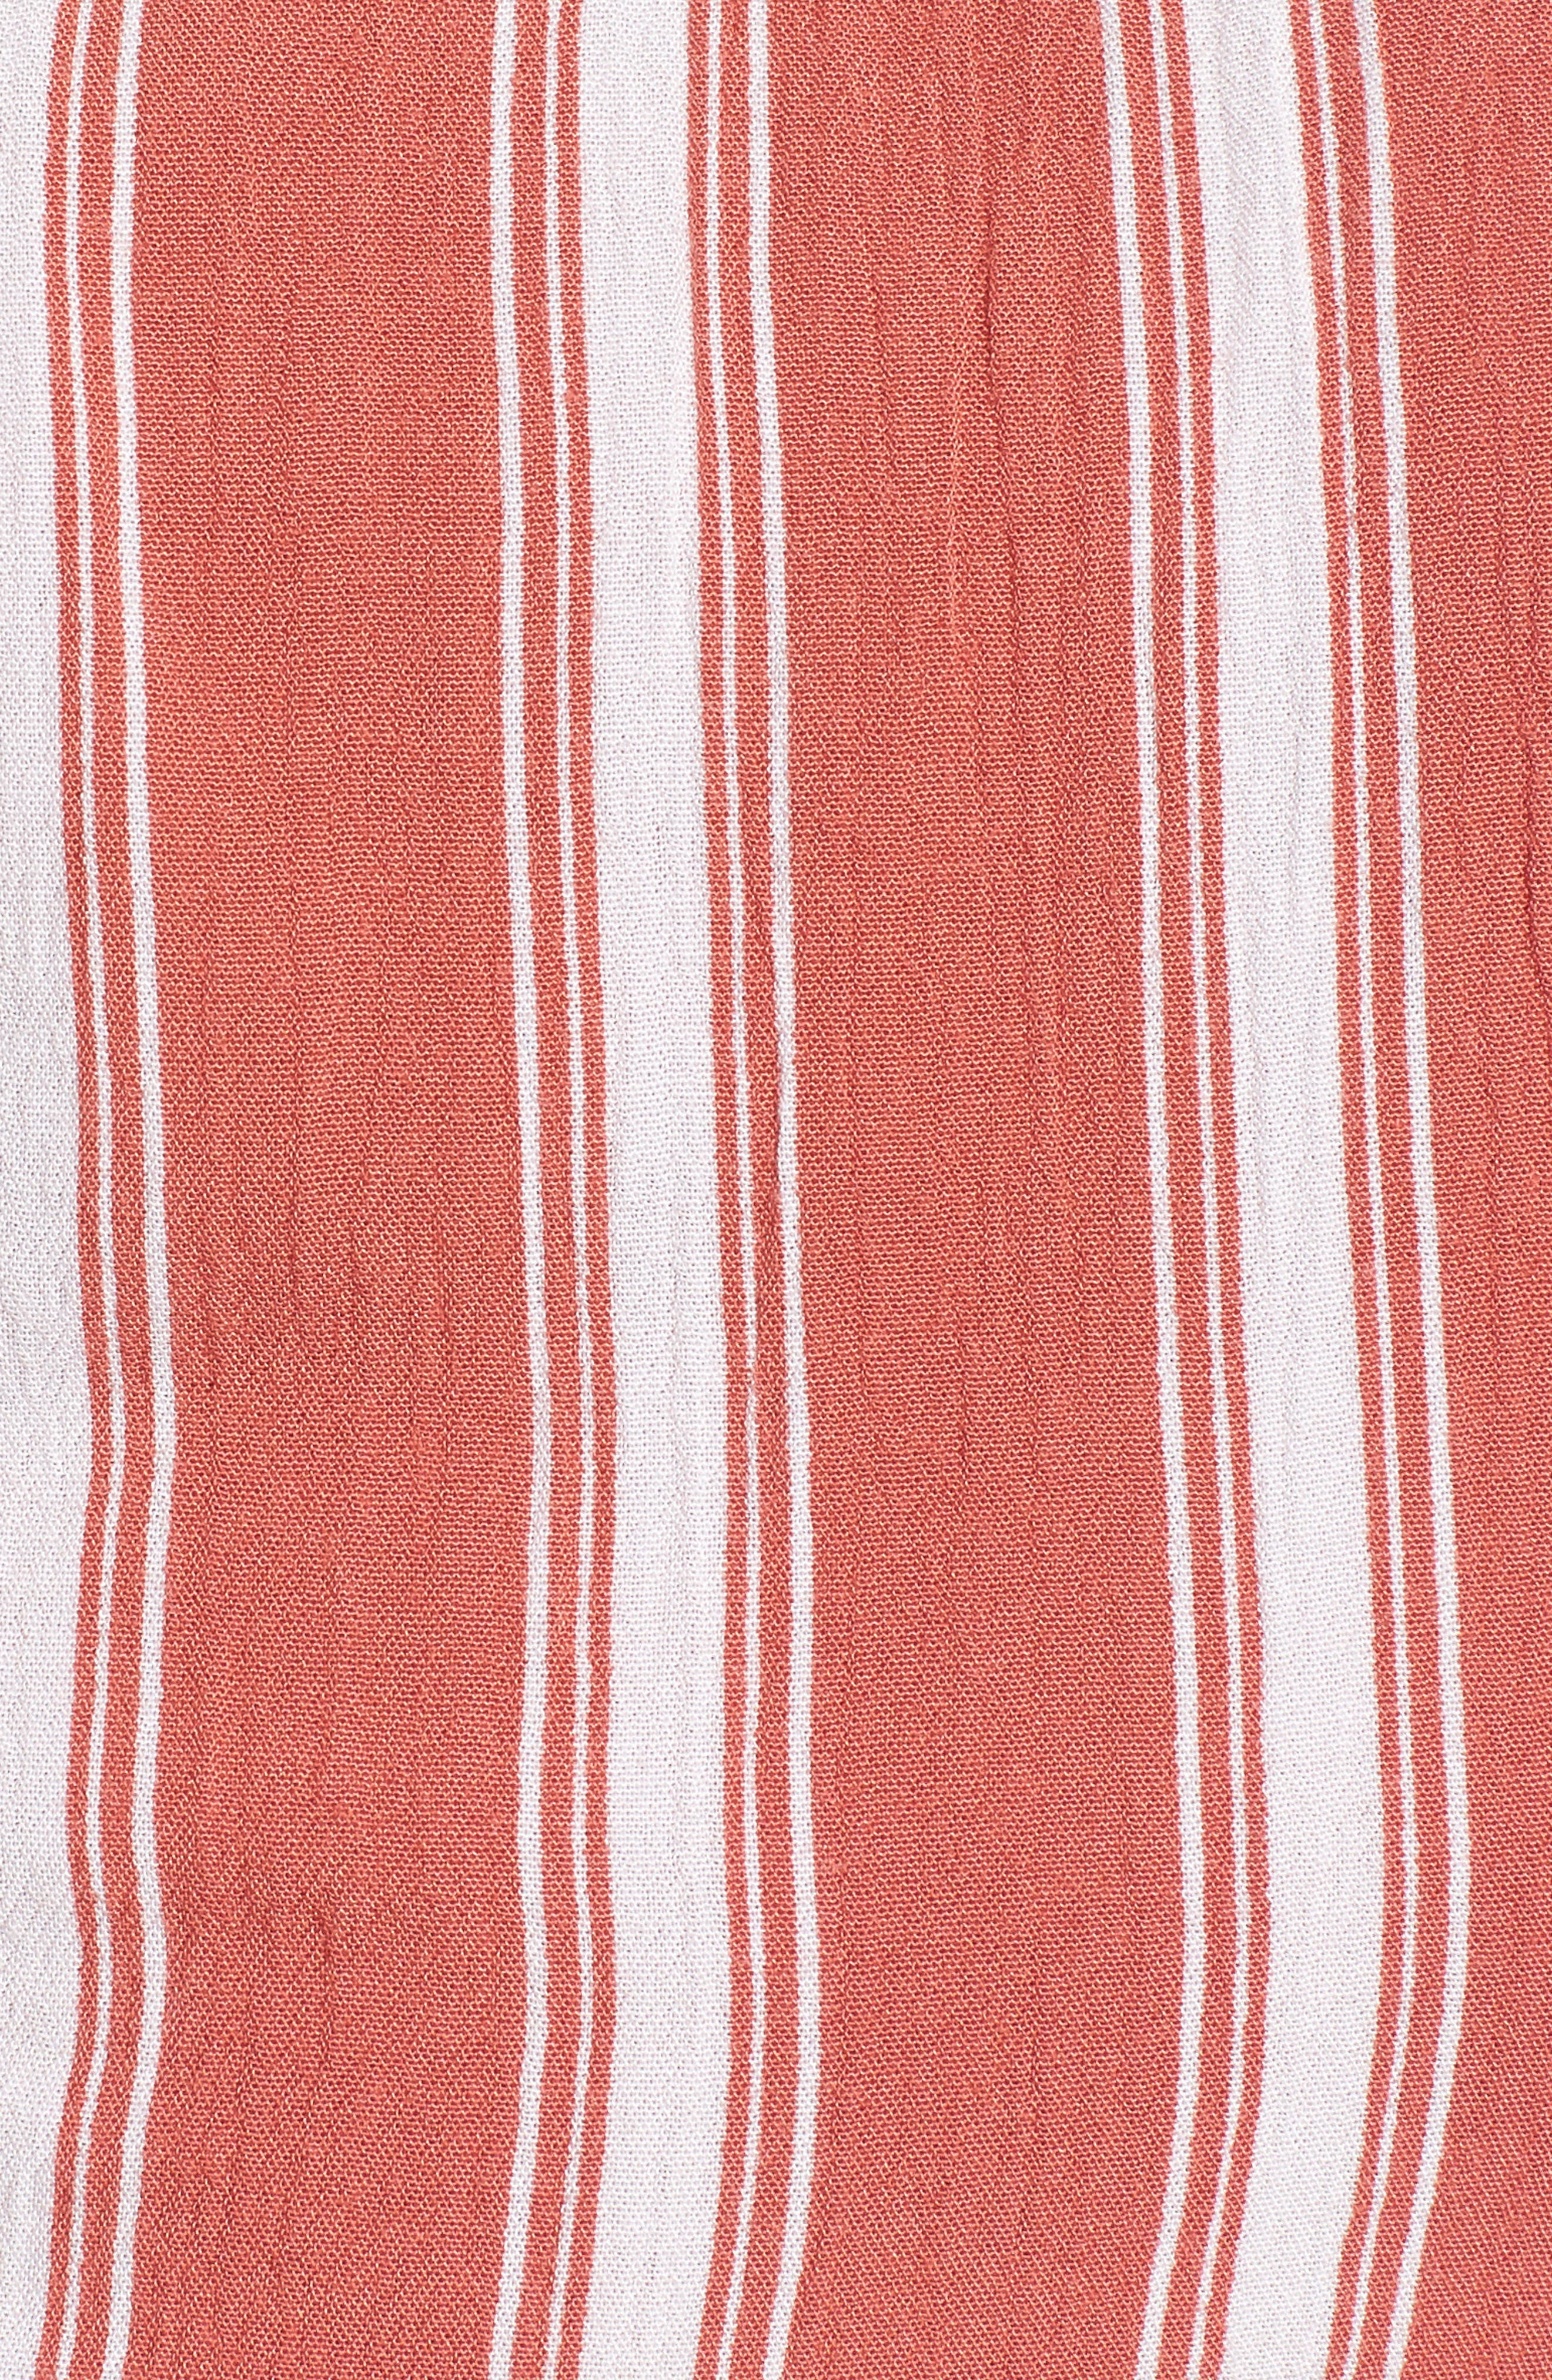 Stripe Smocked Crop Top,                             Alternate thumbnail 6, color,                             Dusty Coral/ Ivory